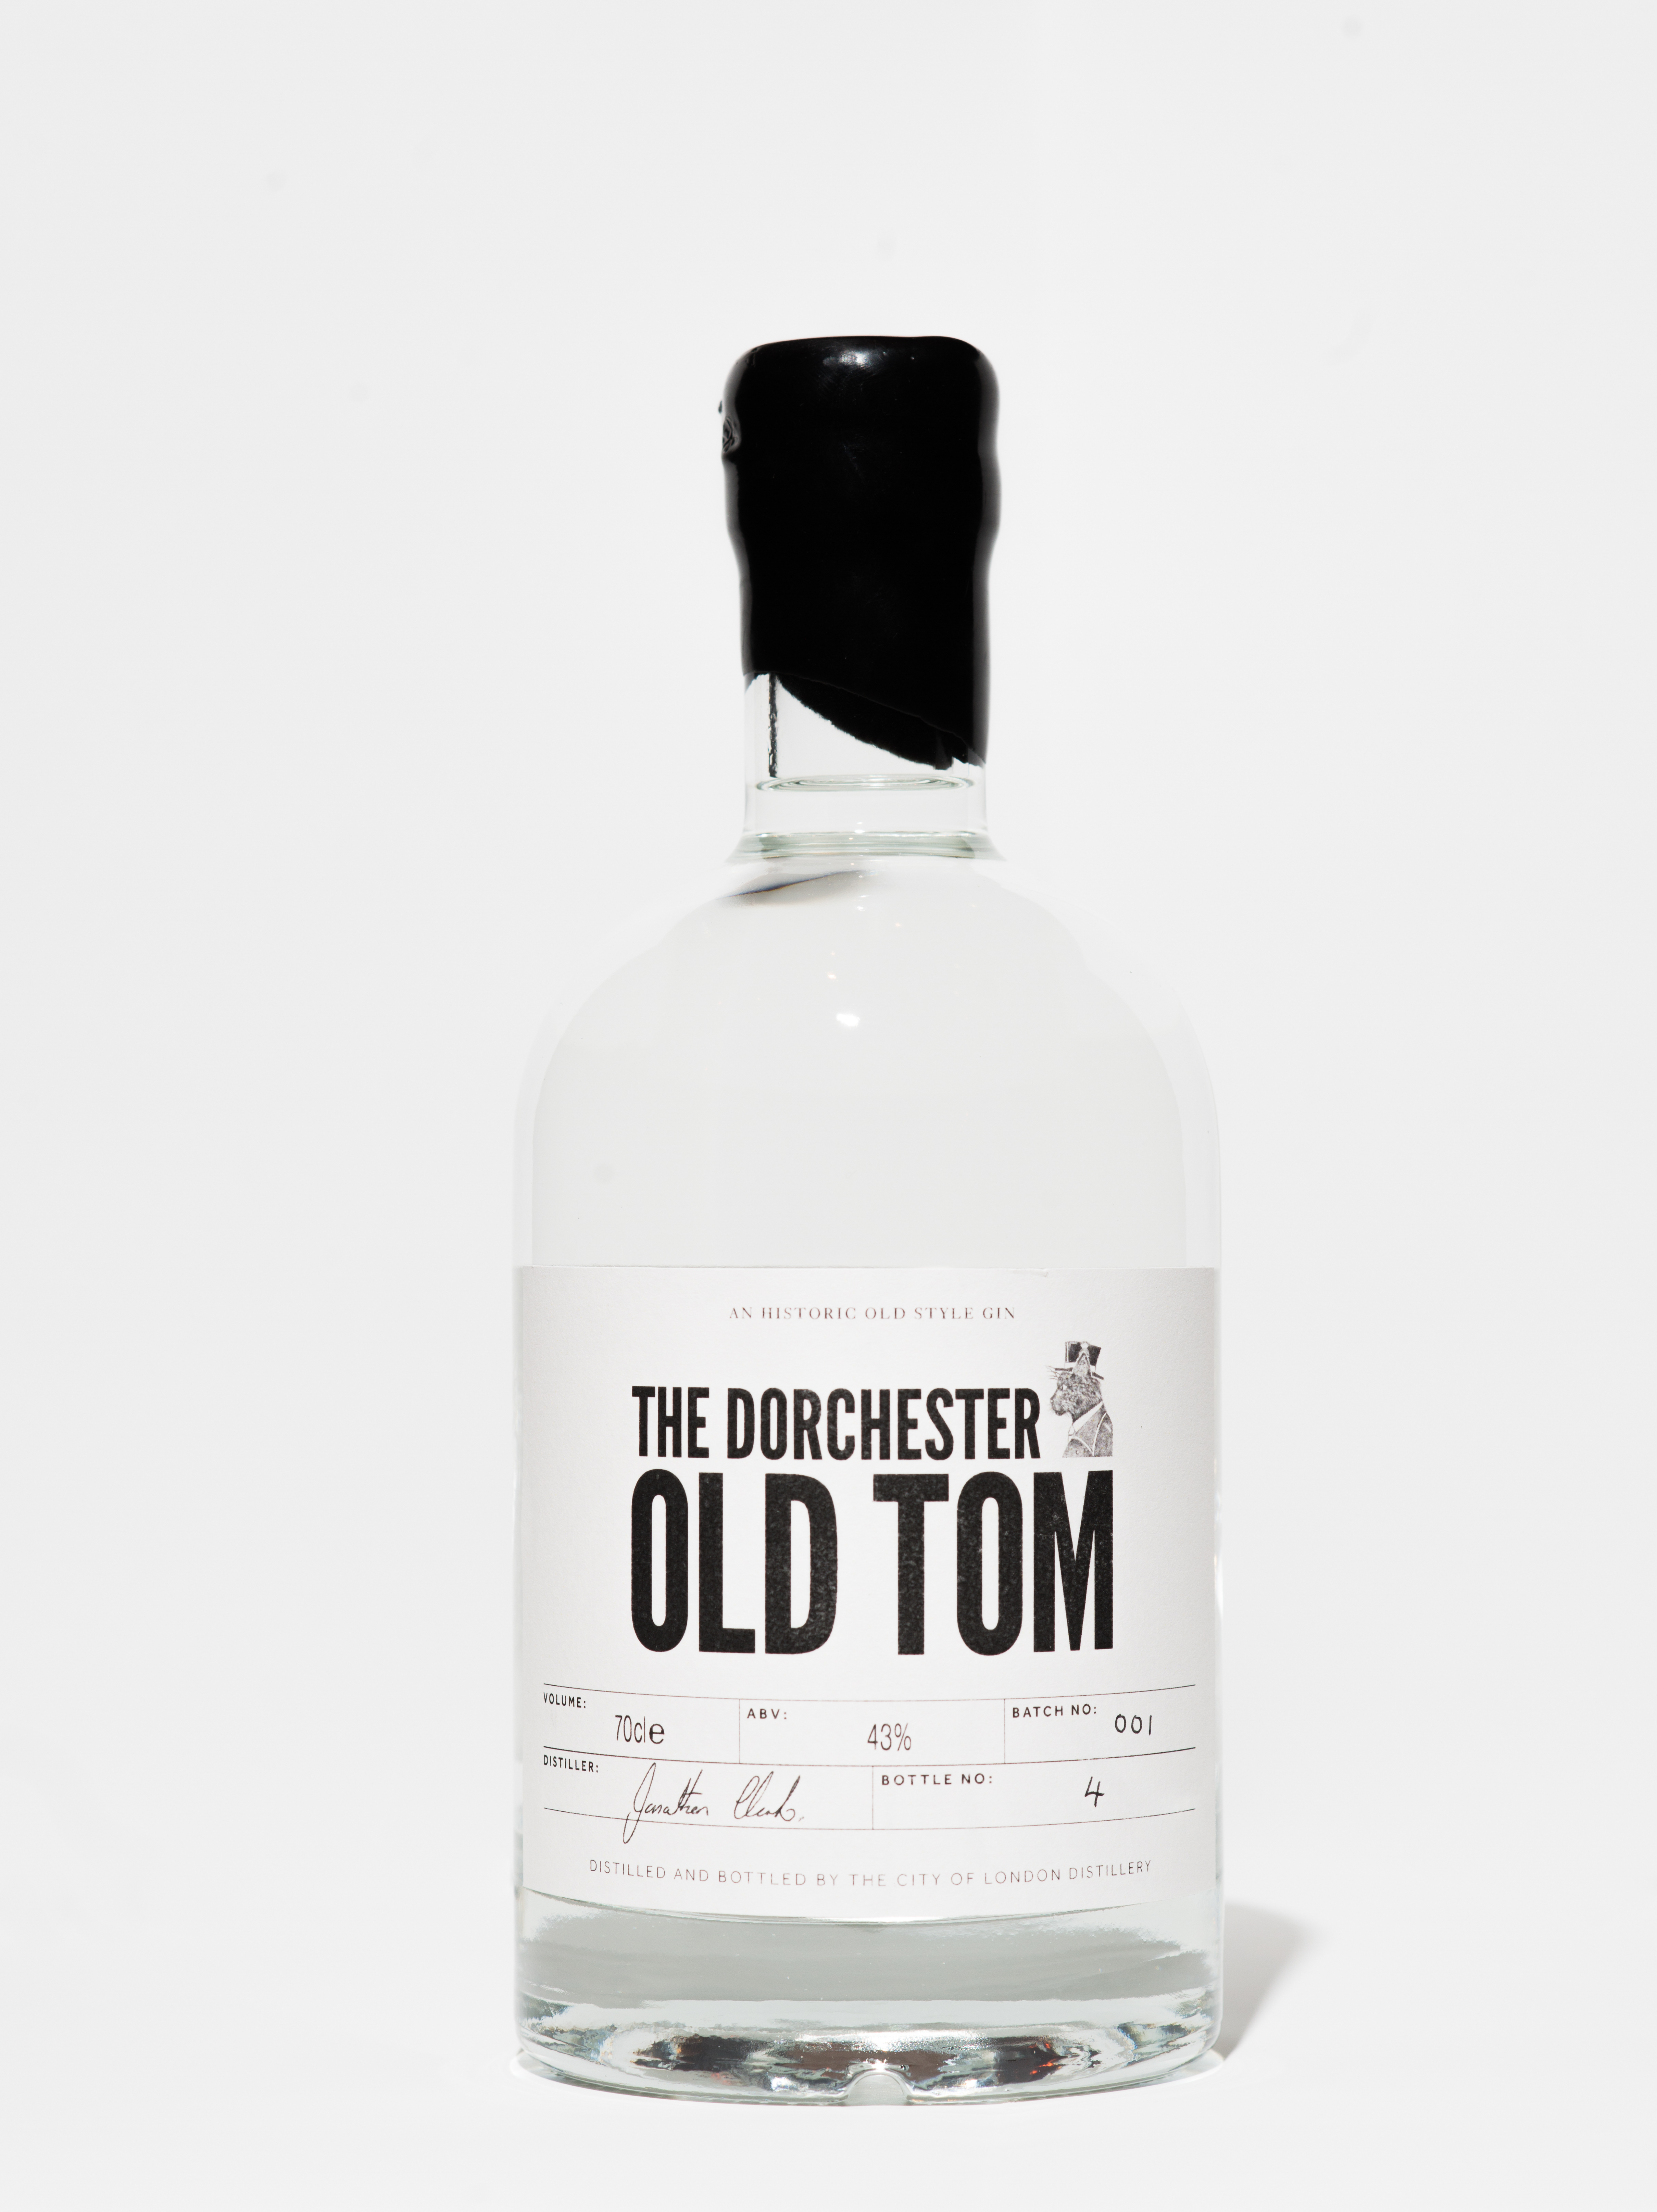 The Old Tom Revival